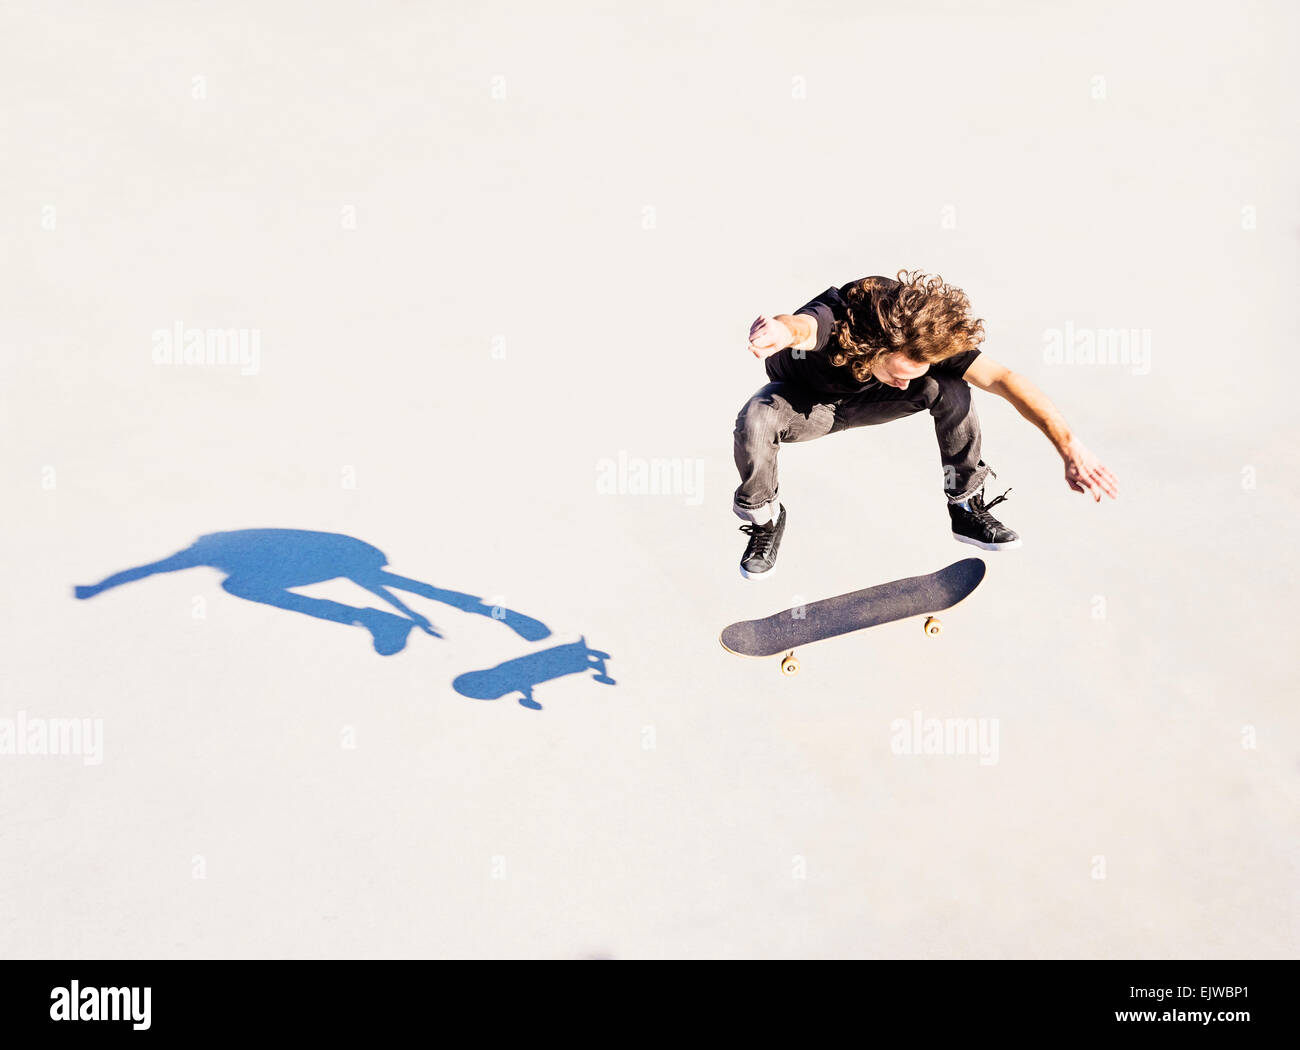 USA, Floride, West Palm Beach, l'homme sautant sur roulettes dans skatepark Photo Stock